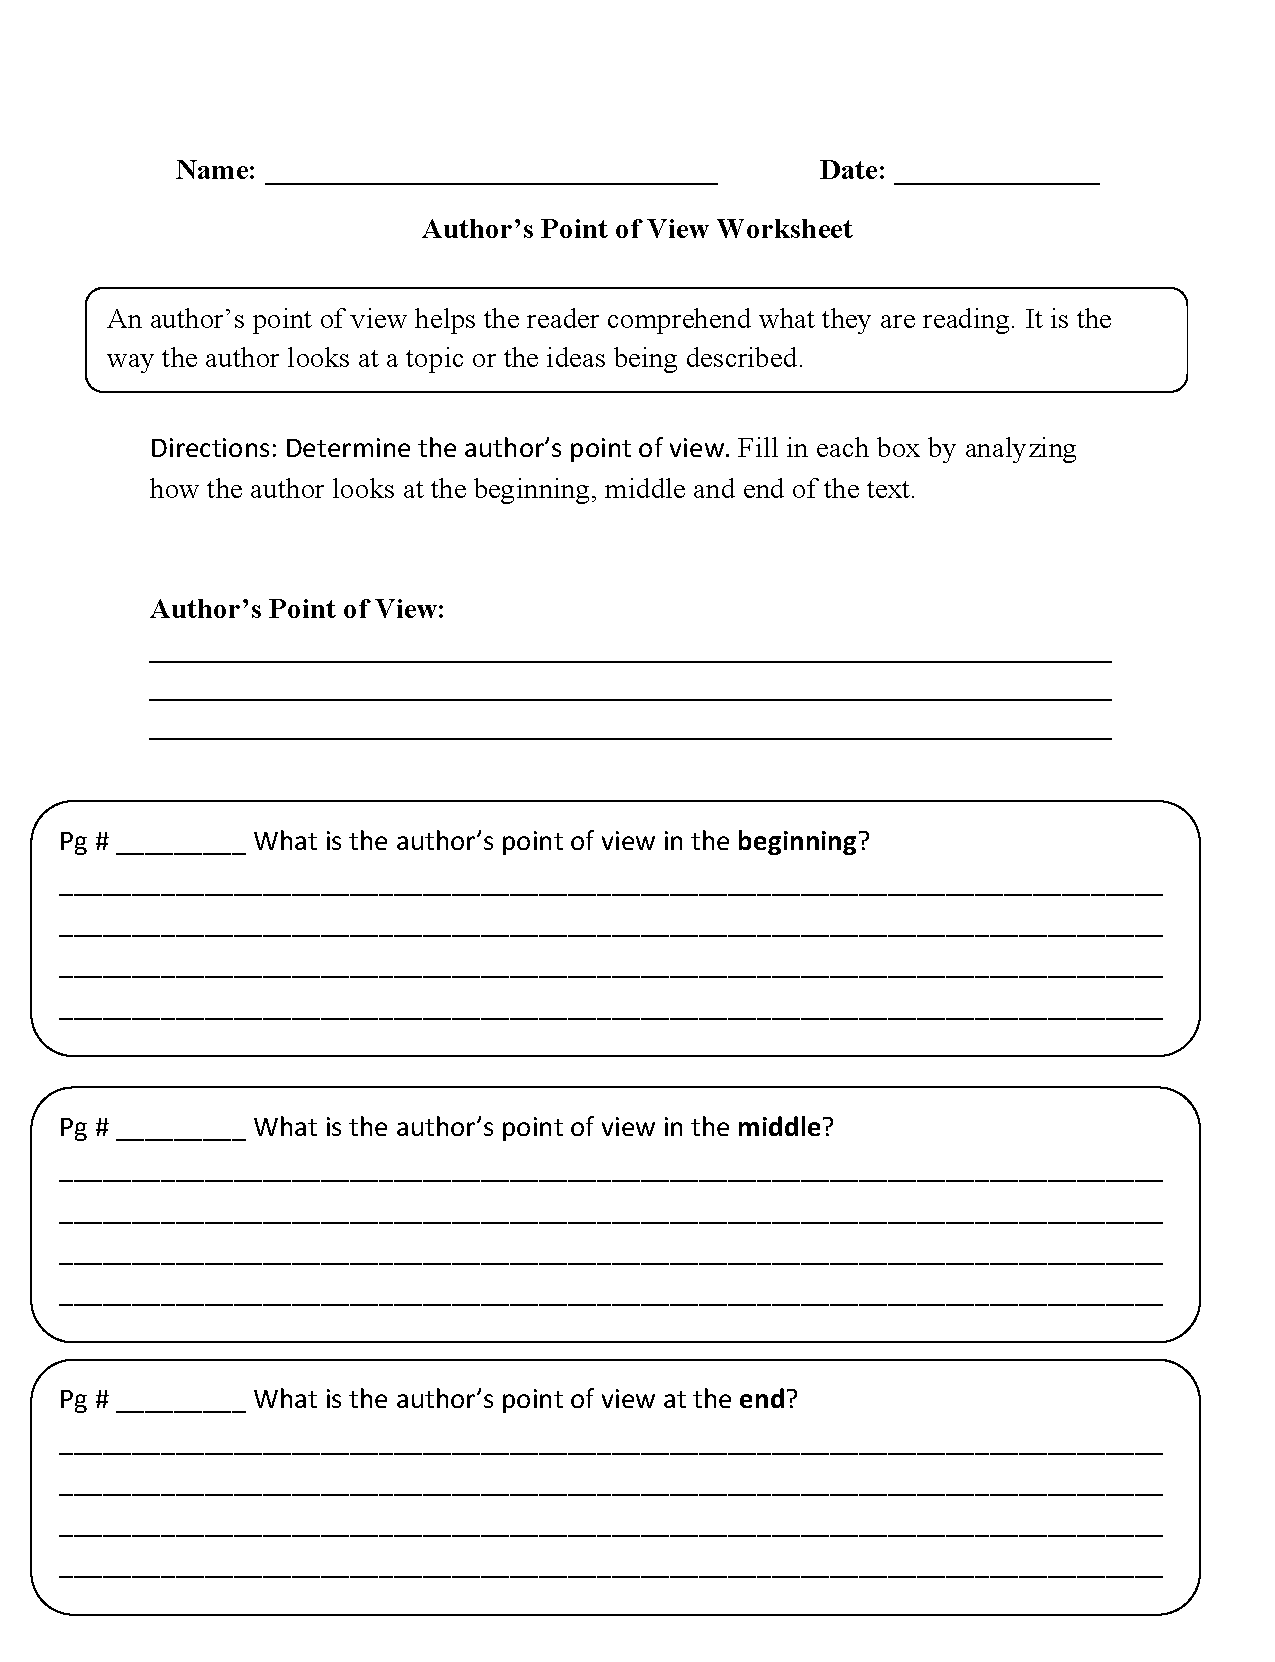 Weirdmailus  Terrific Englishlinxcom  Point Of View Worksheets With Handsome Point Of View Worksheets With Astonishing Rate Ratio And Proportion Worksheets Also Seven Times Tables Worksheet In Addition Multiplication Tables Worksheet Printable And Worksheets On Atomic Structure As Well As Tessellations Worksheets To Color Additionally Grade  Free Printable Worksheets From Englishlinxcom With Weirdmailus  Handsome Englishlinxcom  Point Of View Worksheets With Astonishing Point Of View Worksheets And Terrific Rate Ratio And Proportion Worksheets Also Seven Times Tables Worksheet In Addition Multiplication Tables Worksheet Printable From Englishlinxcom